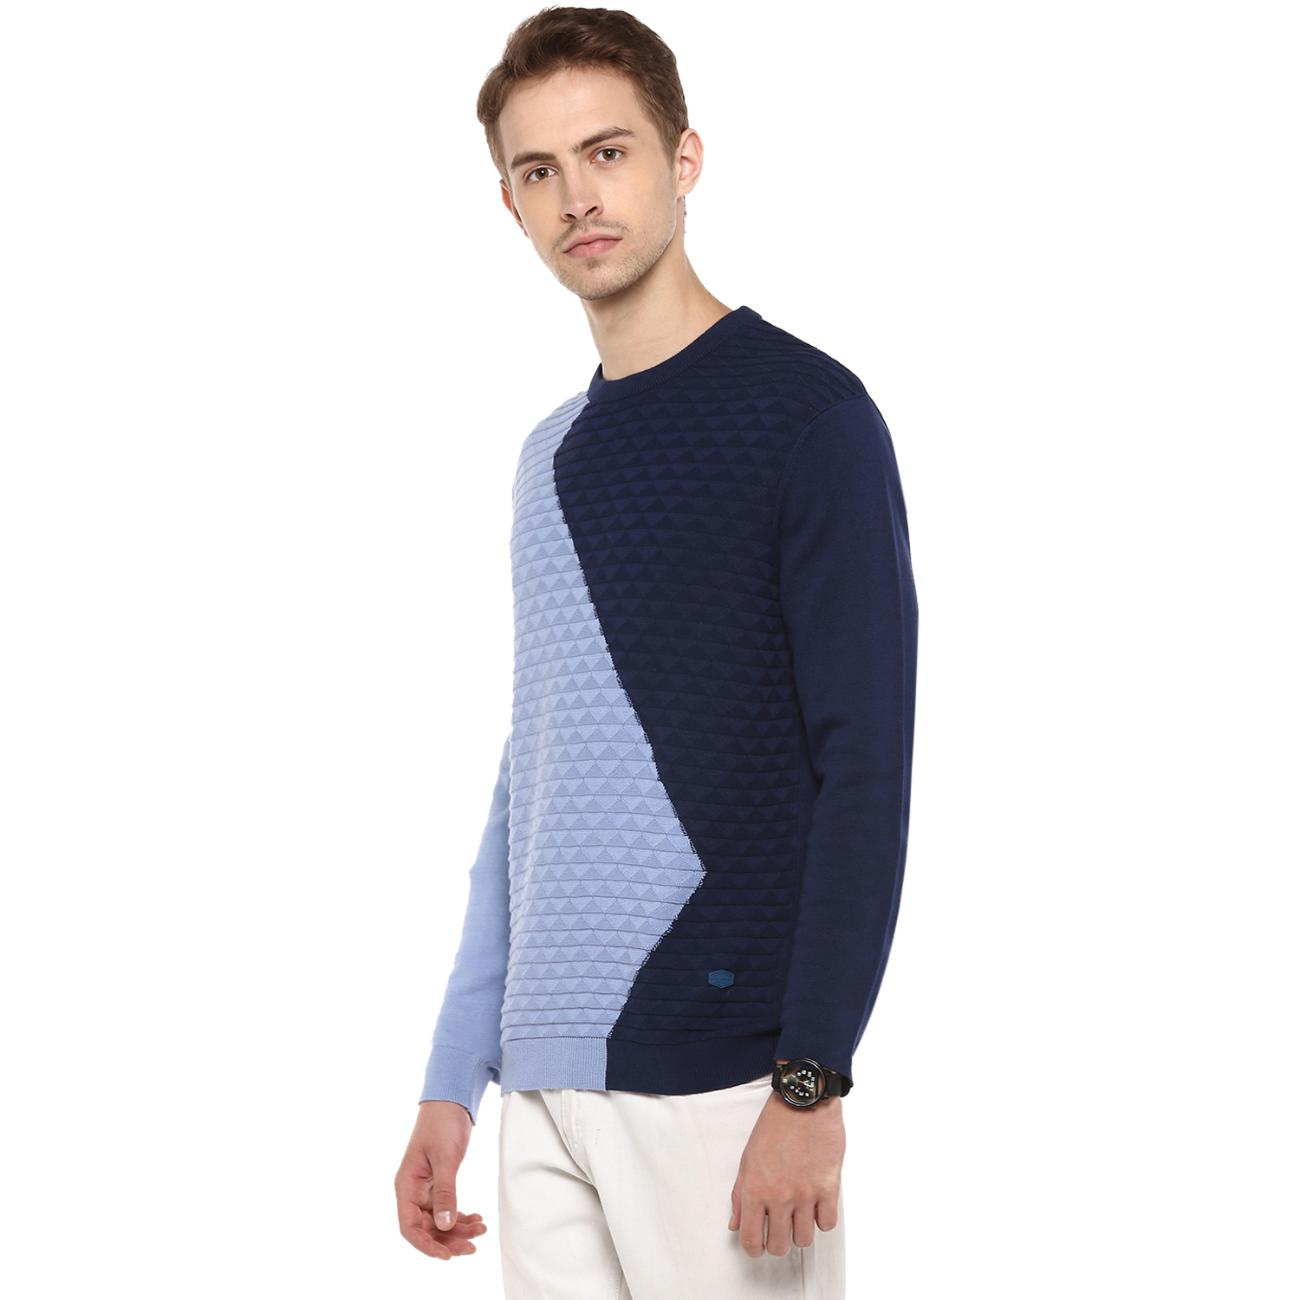 Red Chief's Blue Colour Blocked Sweater